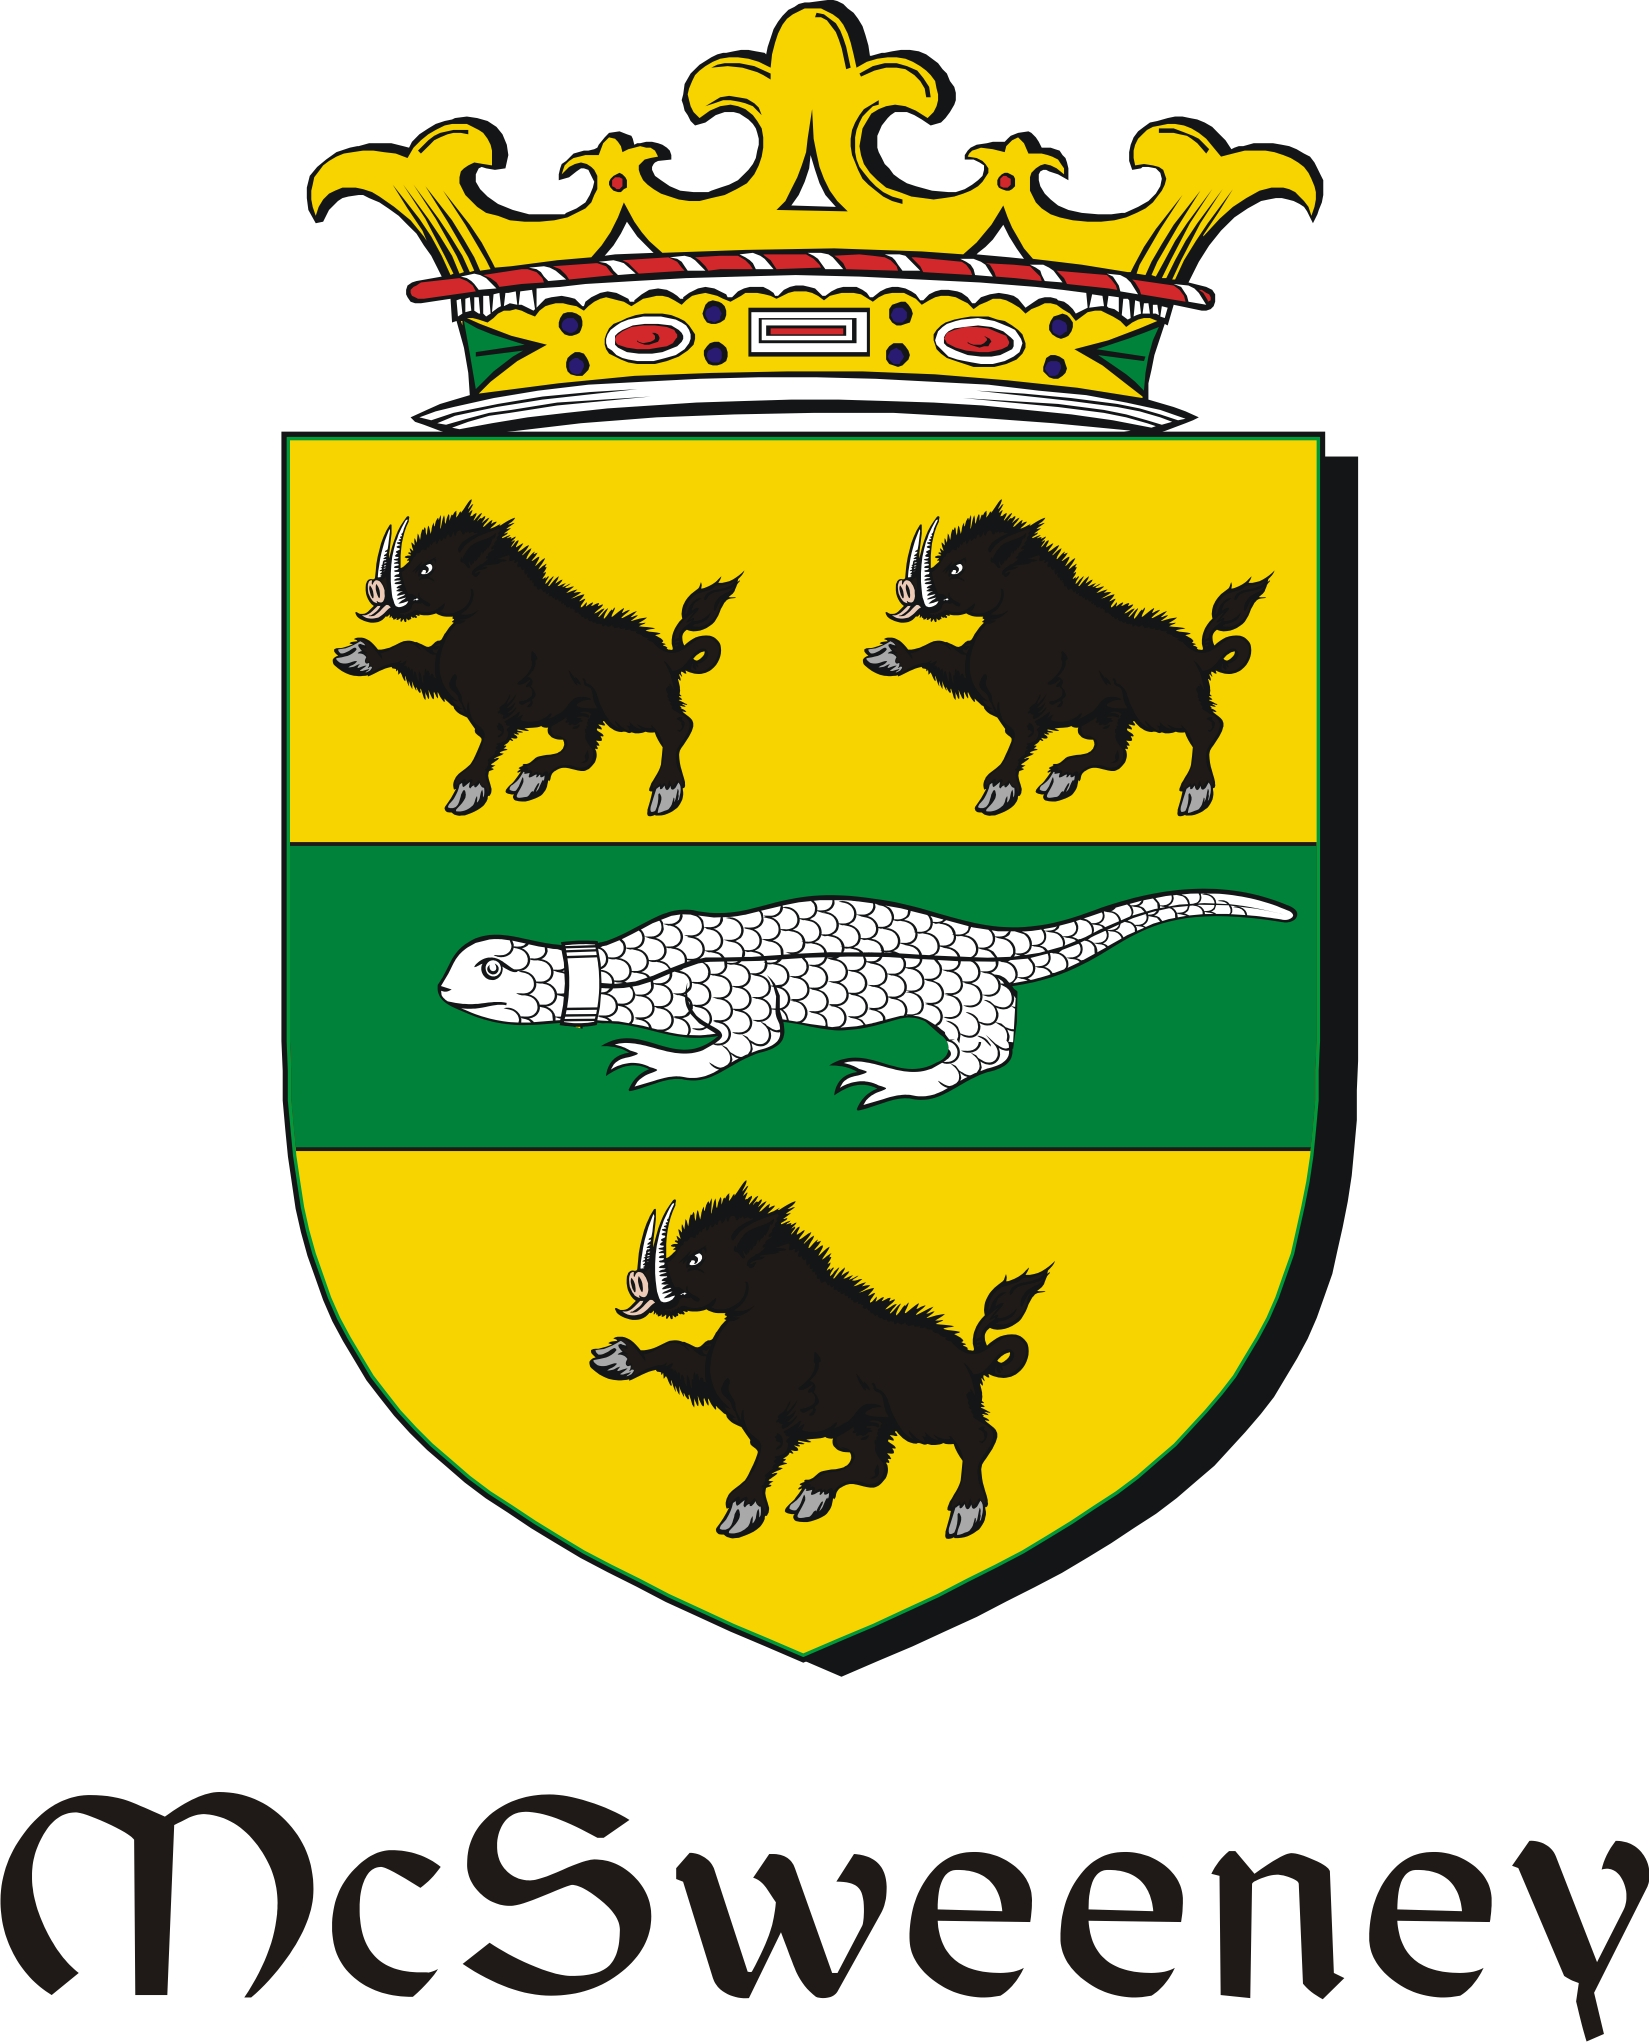 Sweeney mc family crest irish coat of arms image download downl pay for sweeney mc family crest irish coat of arms image download altavistaventures Image collections